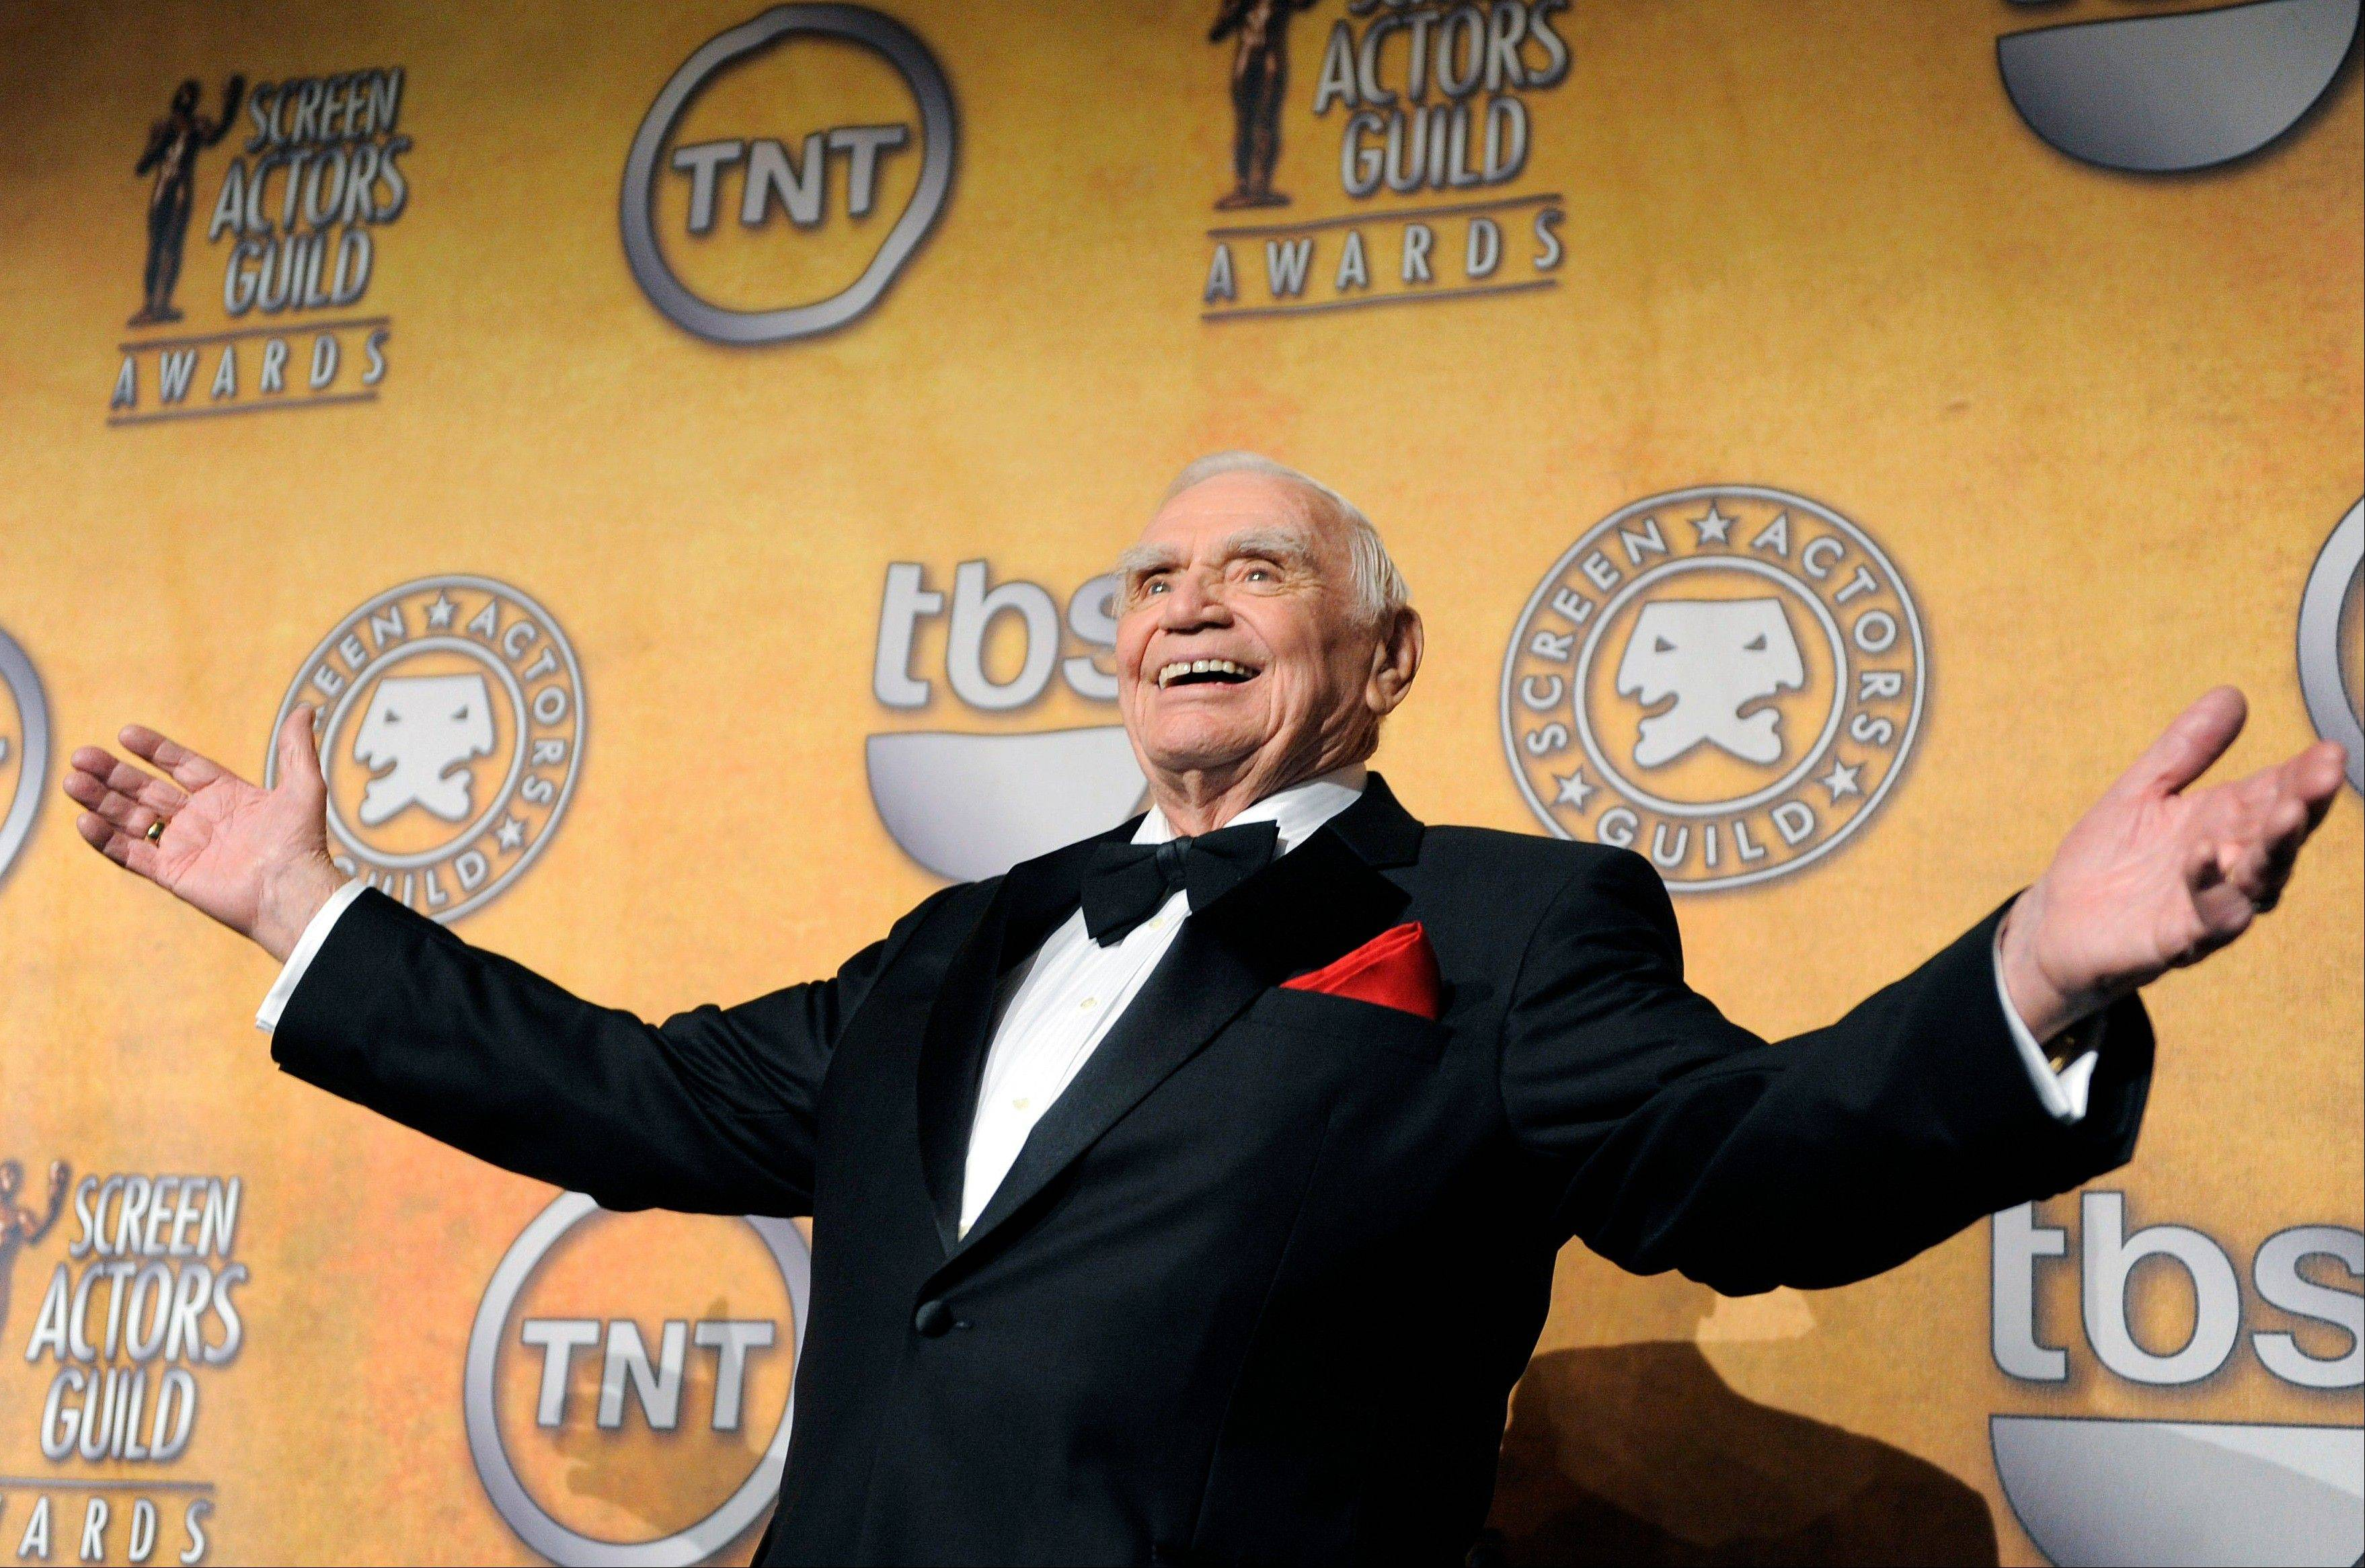 FILE - In this Jan. 30, 2011, file photo, Ernest Borgnine poses backstage after receiving the life achievement award at the 17th Annual Screen Actors Guild Awards in Los Angeles. A spokesman said Sunday, July 8, 2012, that Borgnine has died at the age of 95.